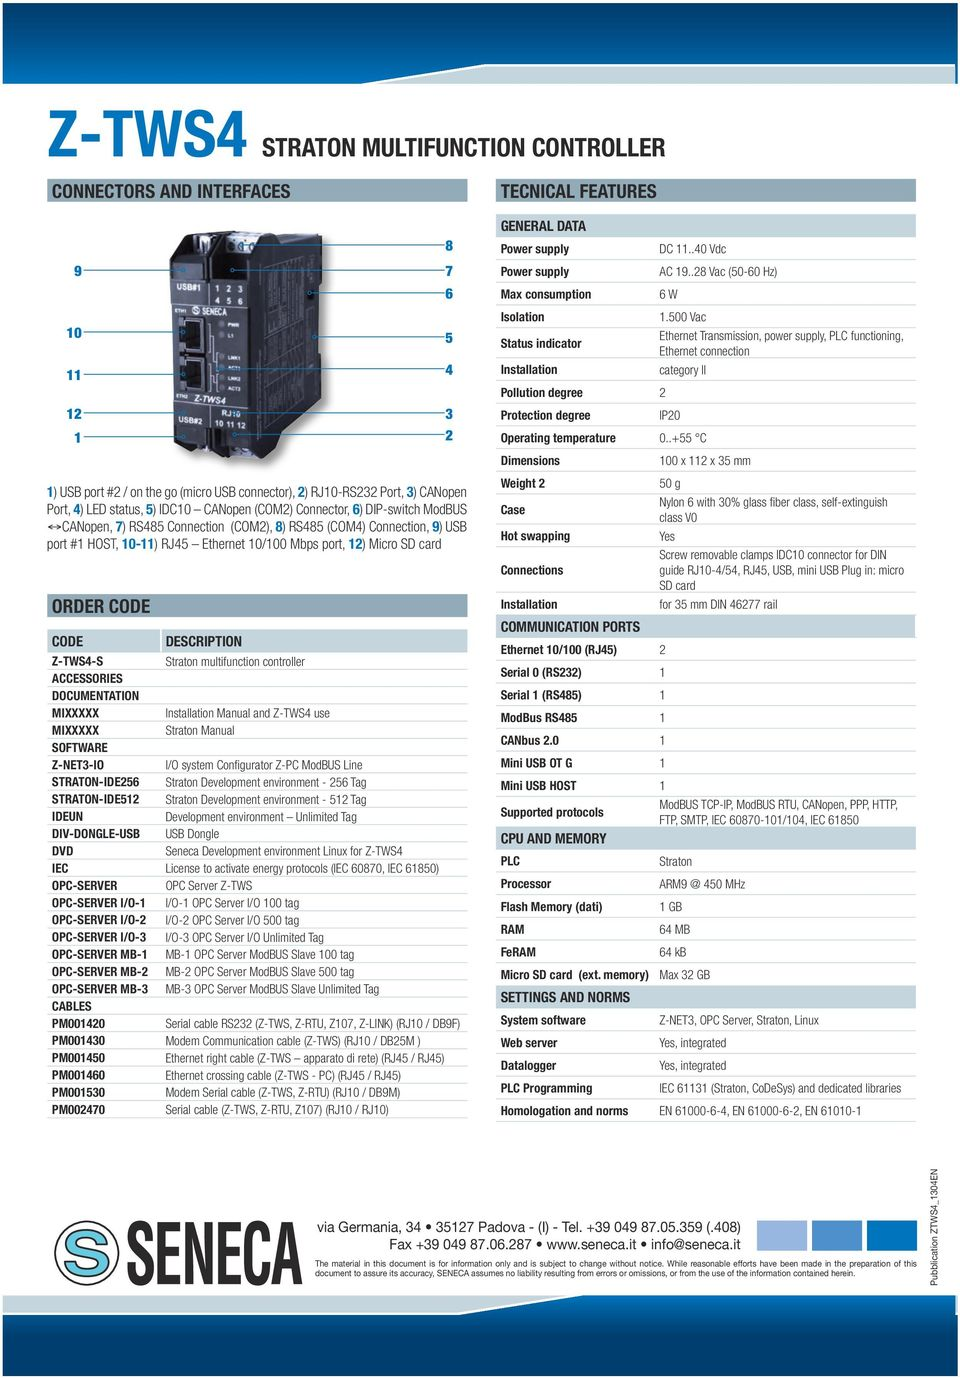 Straton multifunction controller Accessories Documentation MIXXXXX Installation Manual and Z-TWS use MIXXXXX Straton Manual Software Z-NET-IO I/O system Configurator Z-PC Line STRATON-IDE Straton